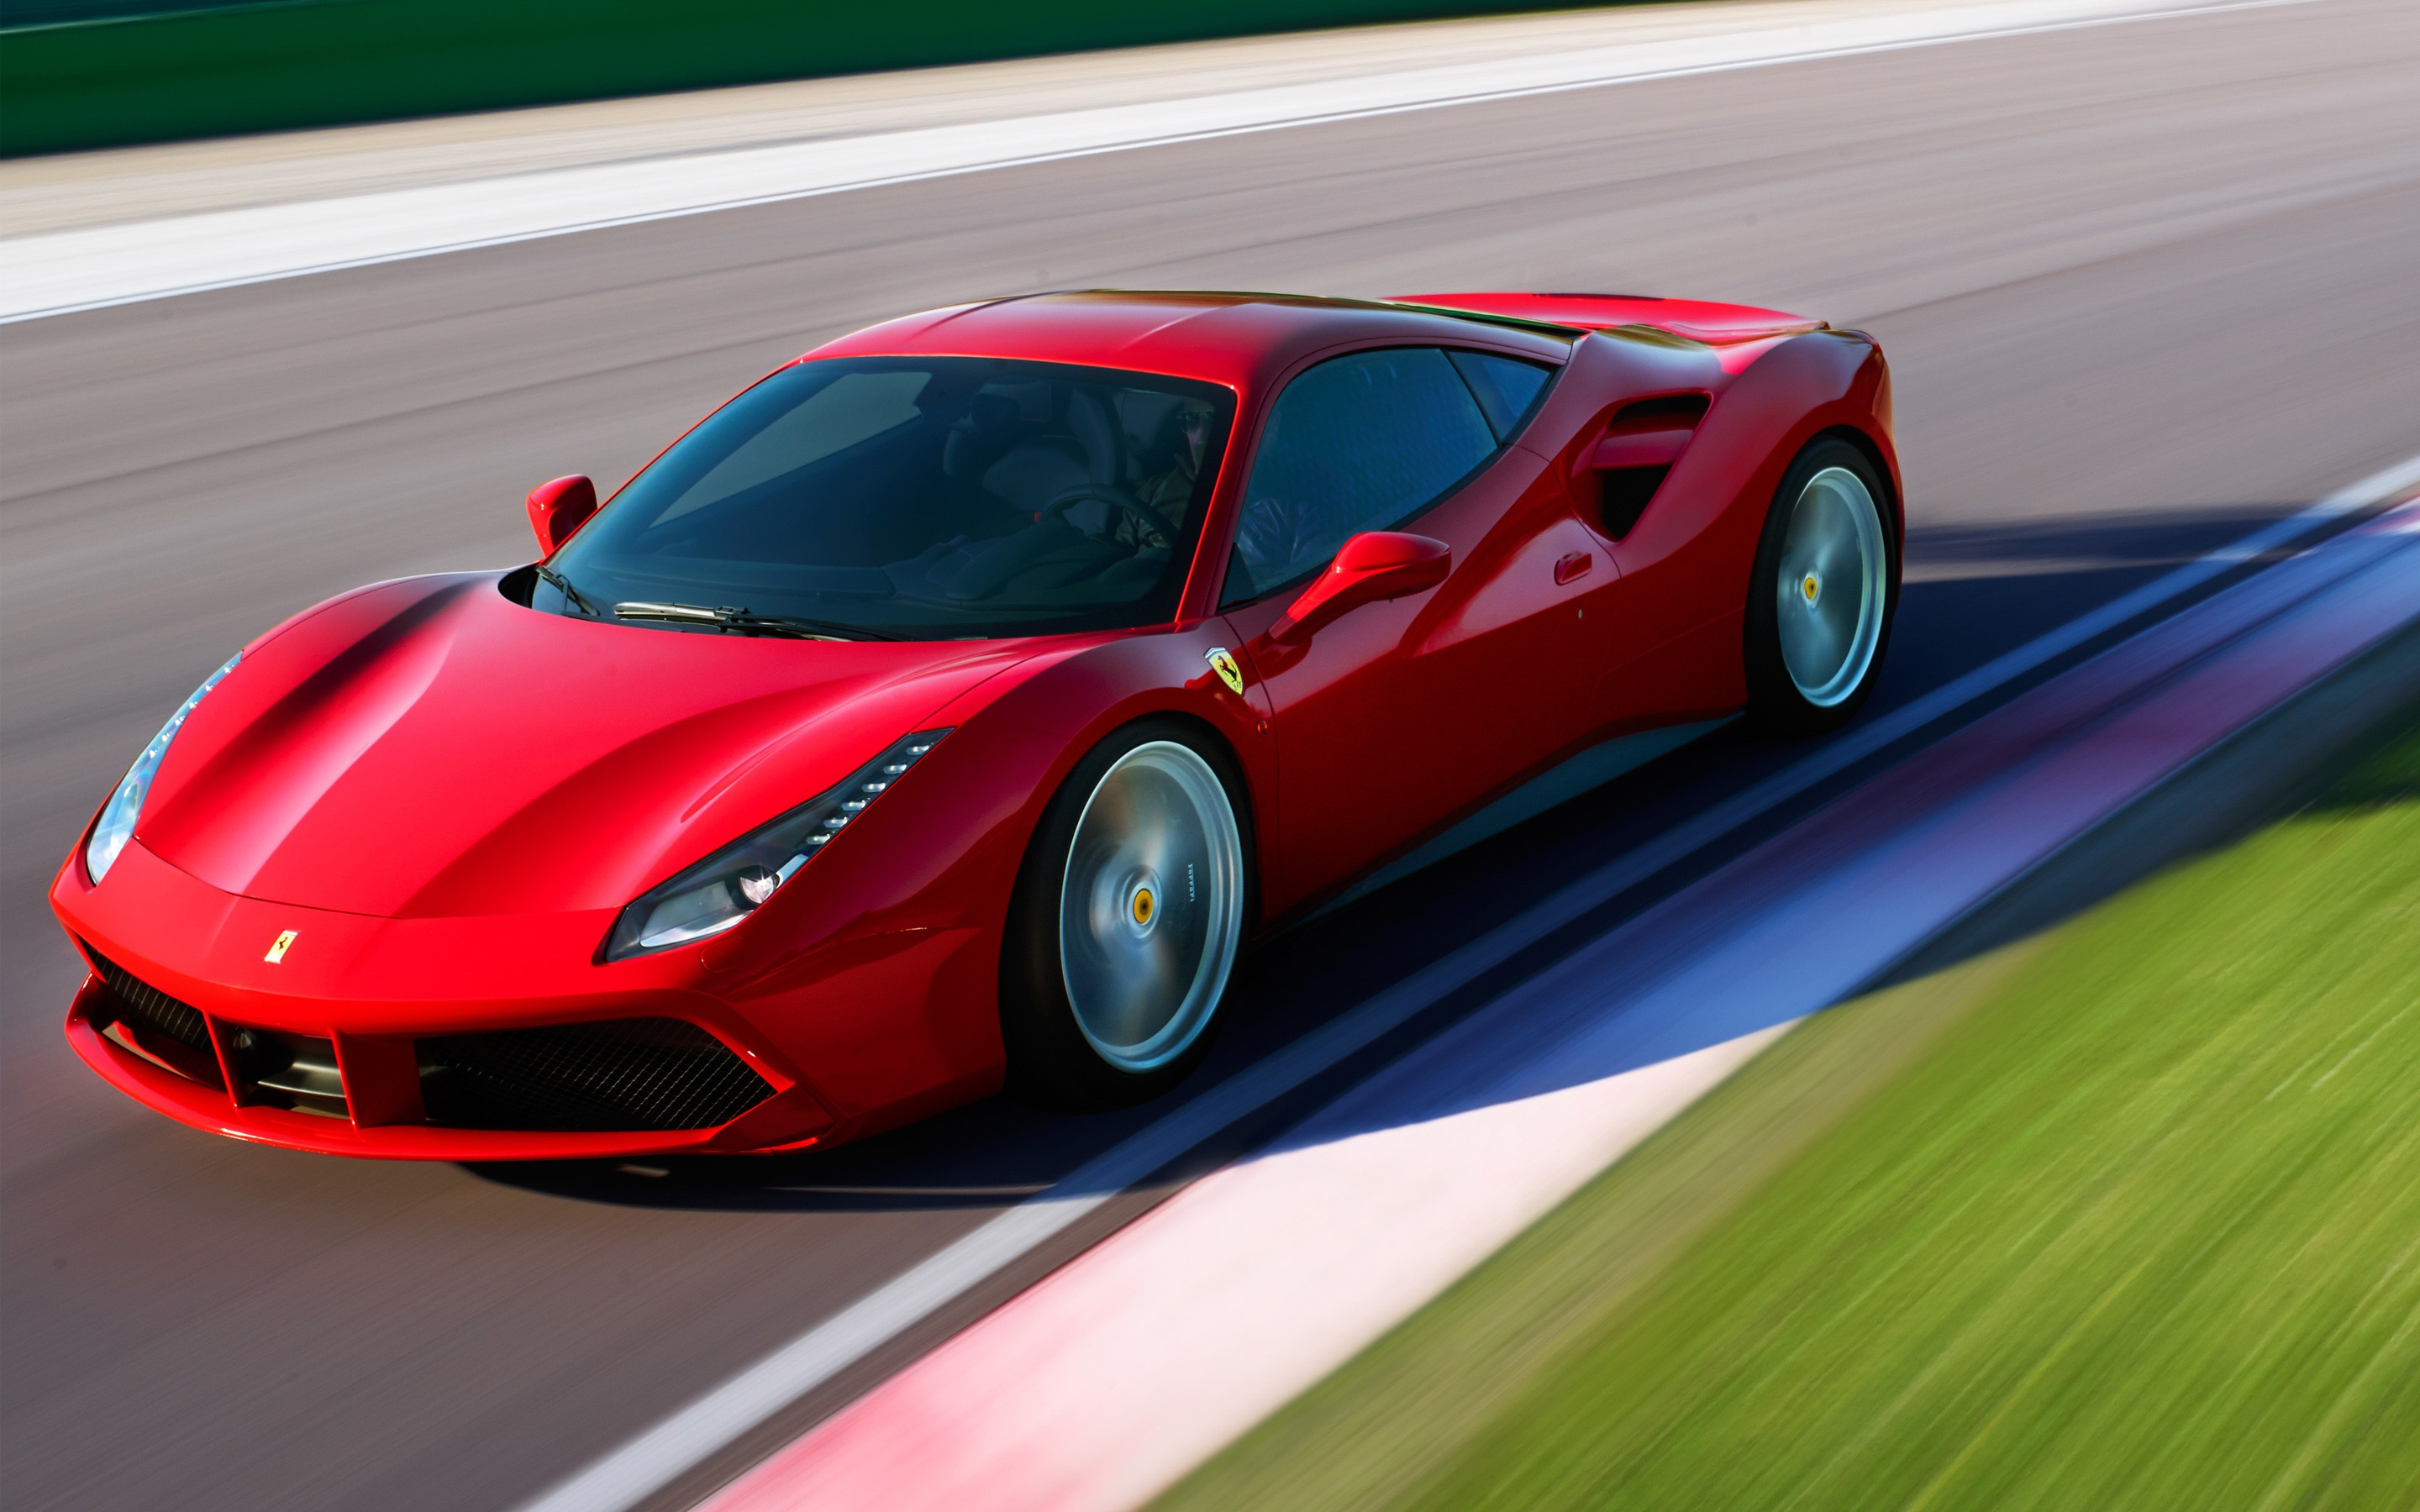 Widescreen Nature Natural Beauty Full Hd All With Ferrari Cars